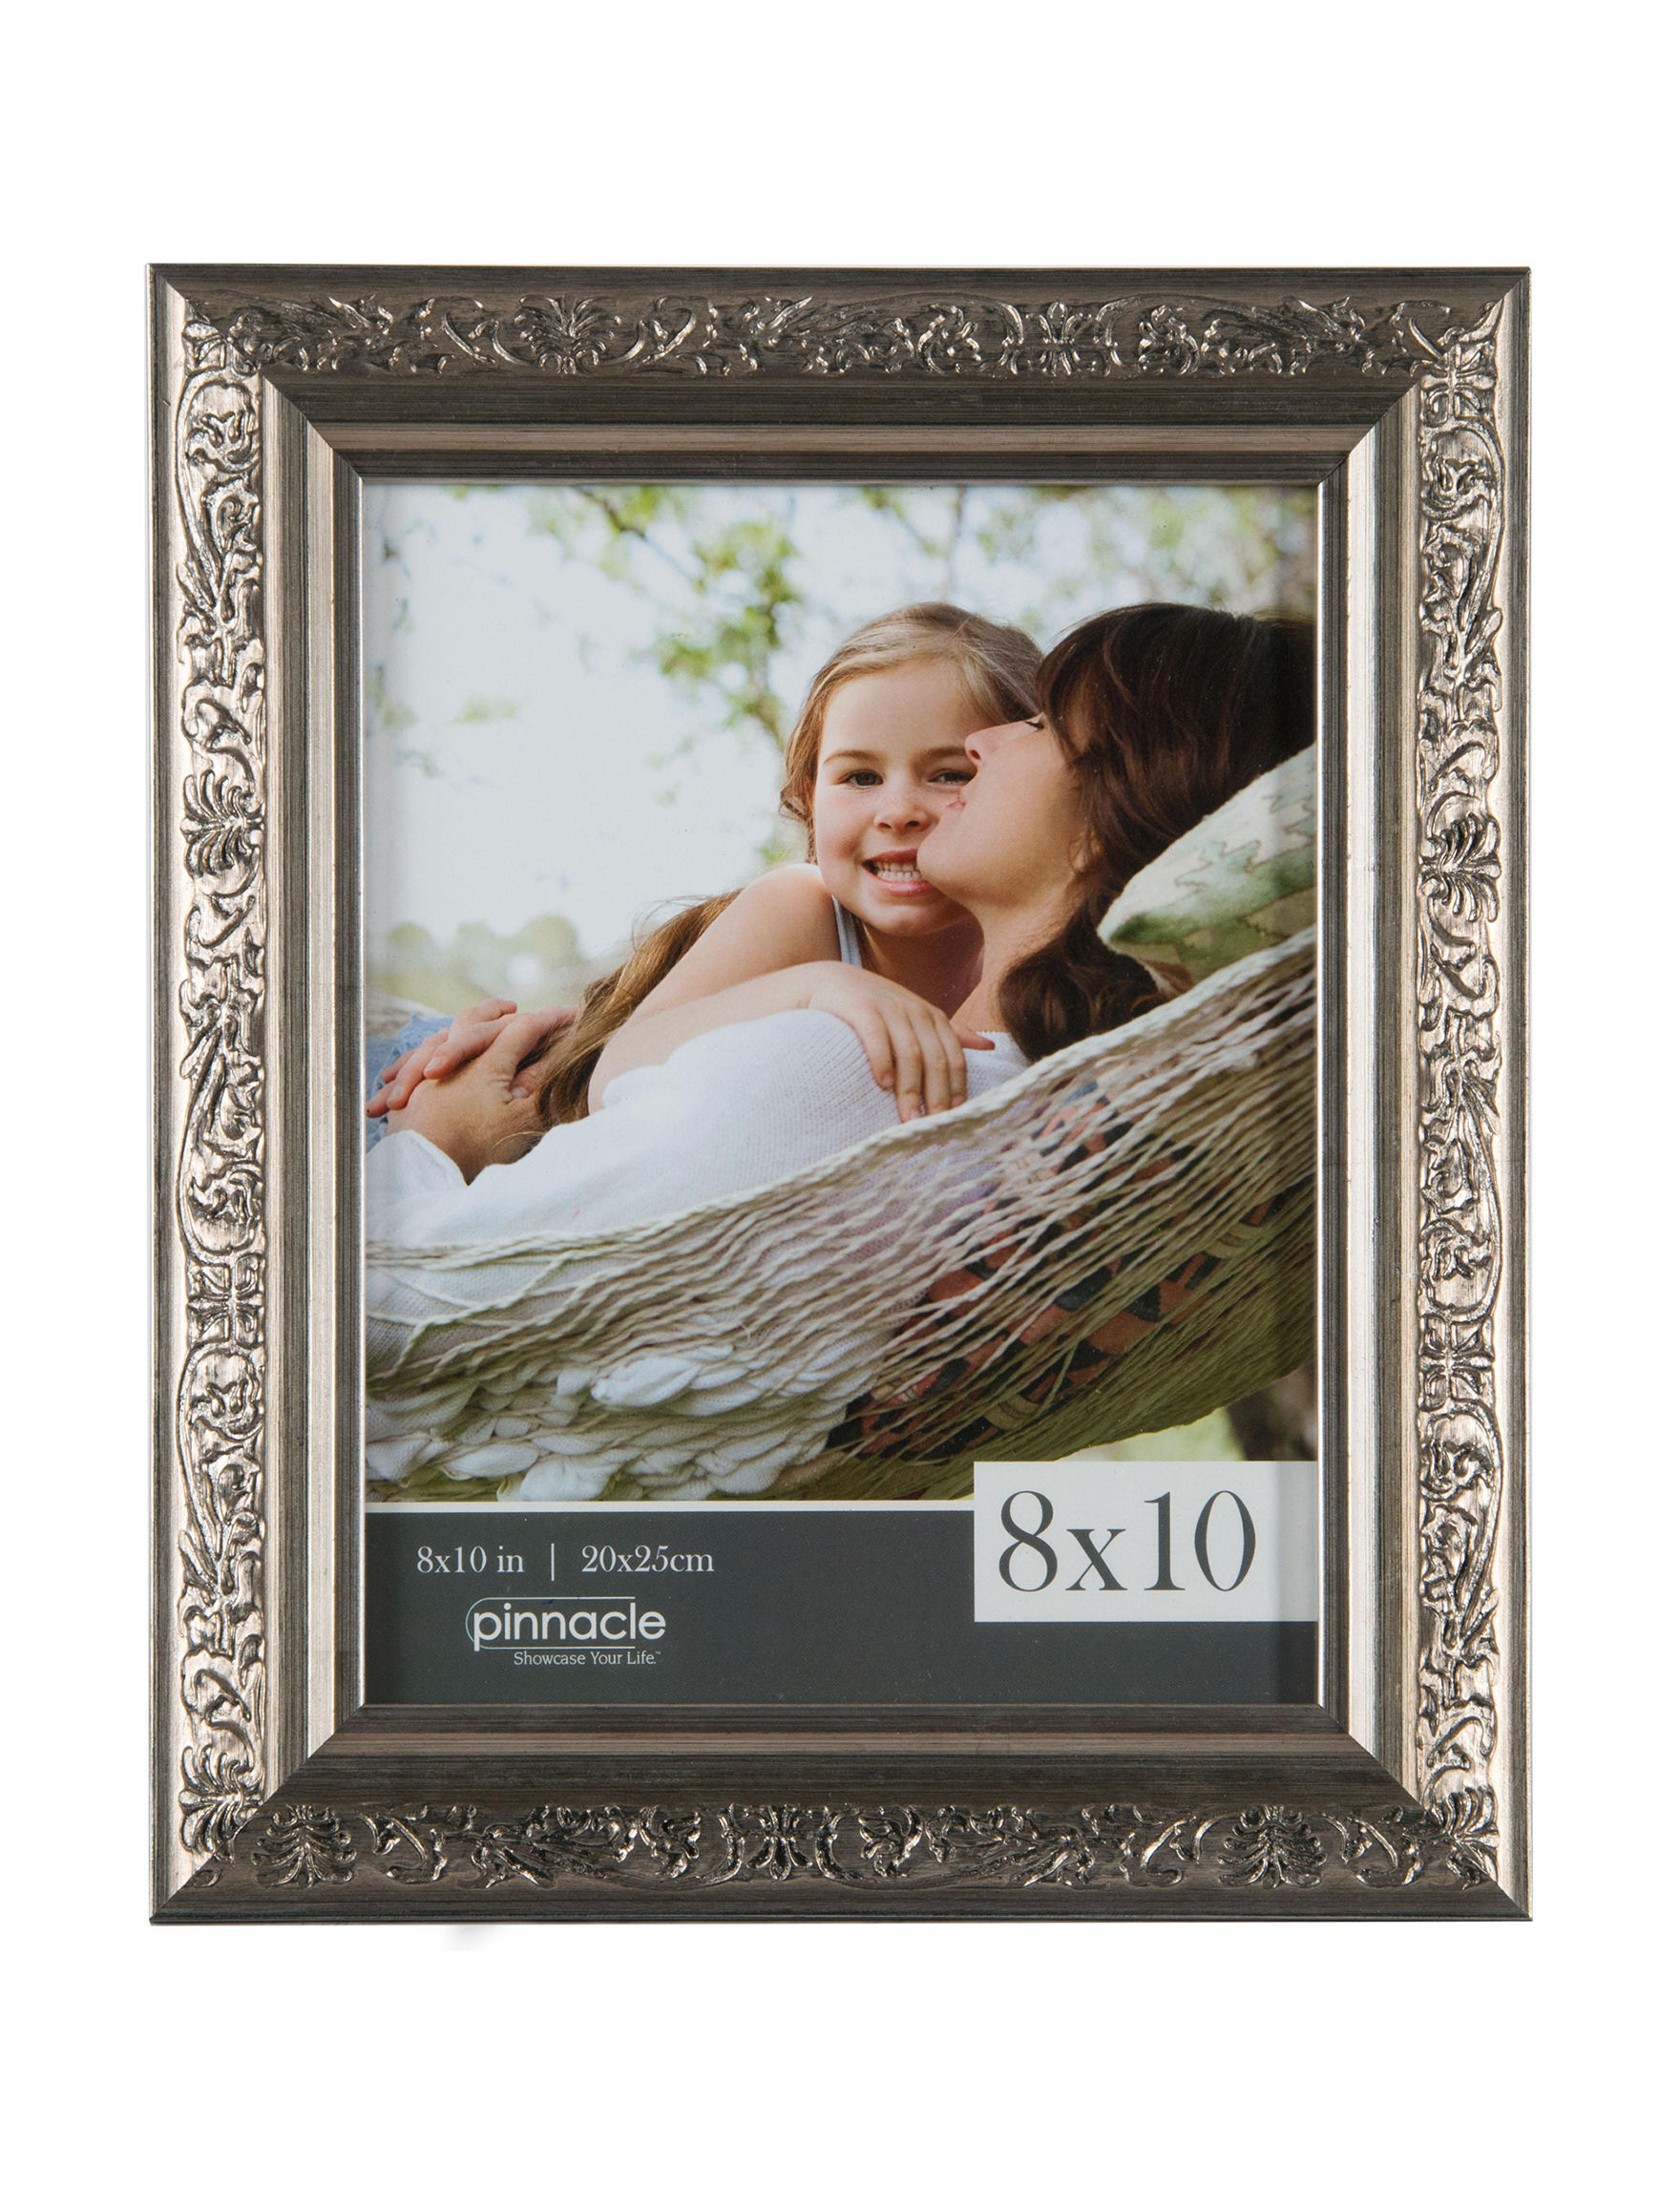 Pinnacle Champagne Frames & Shadow Boxes Home Accents